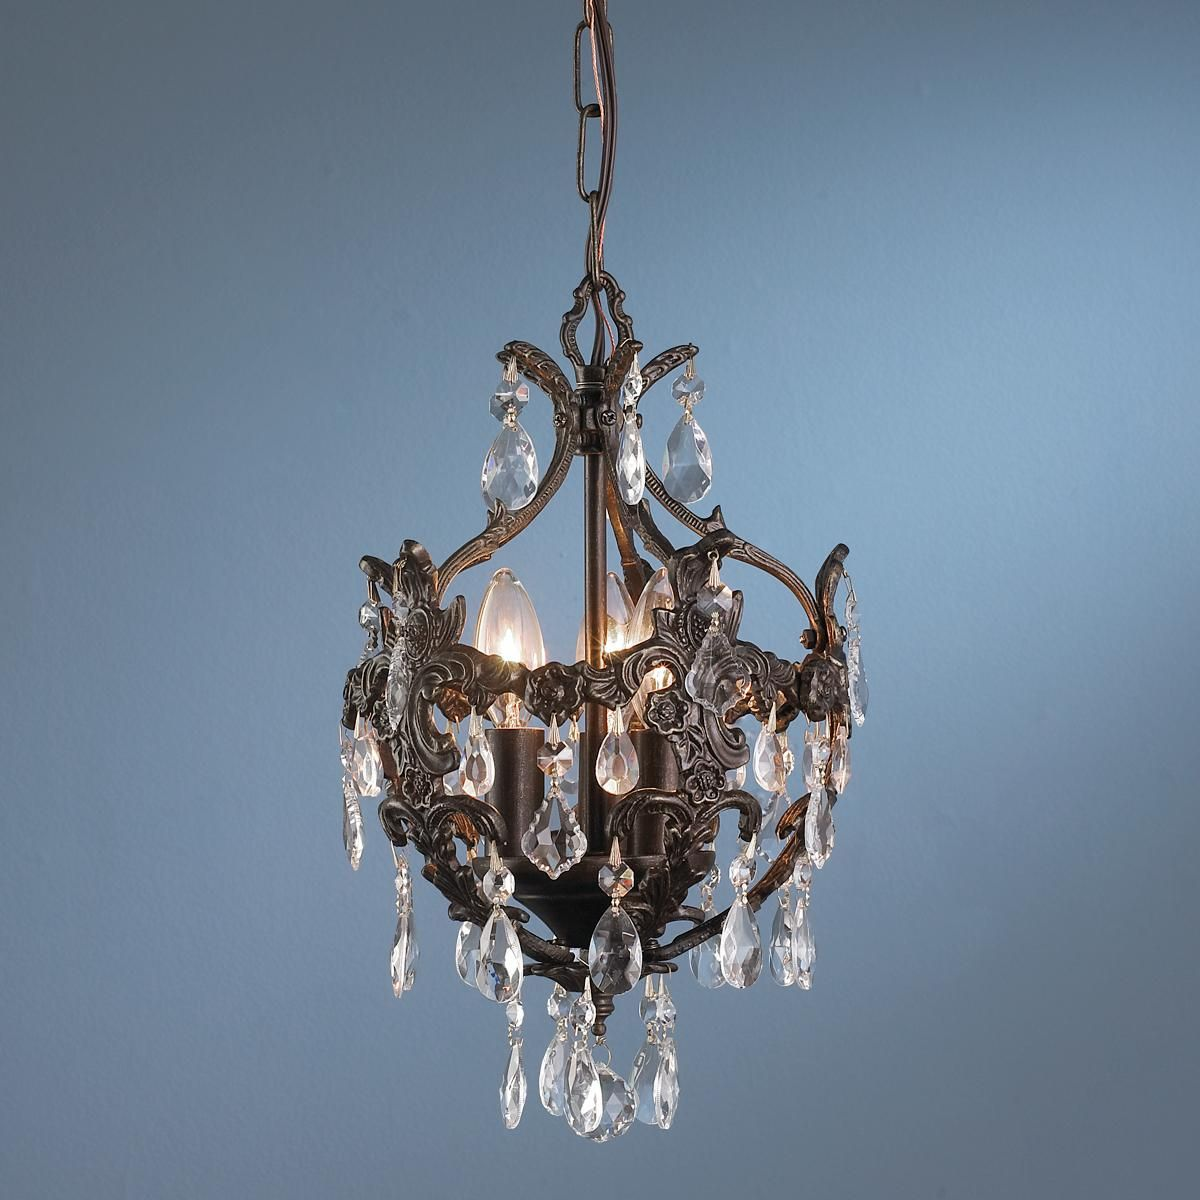 Antique Reproduction Crystal Drop Ceiling Chandelier - Antique Reproduction Crystal Drop Ceiling Chandelier. For The Powder